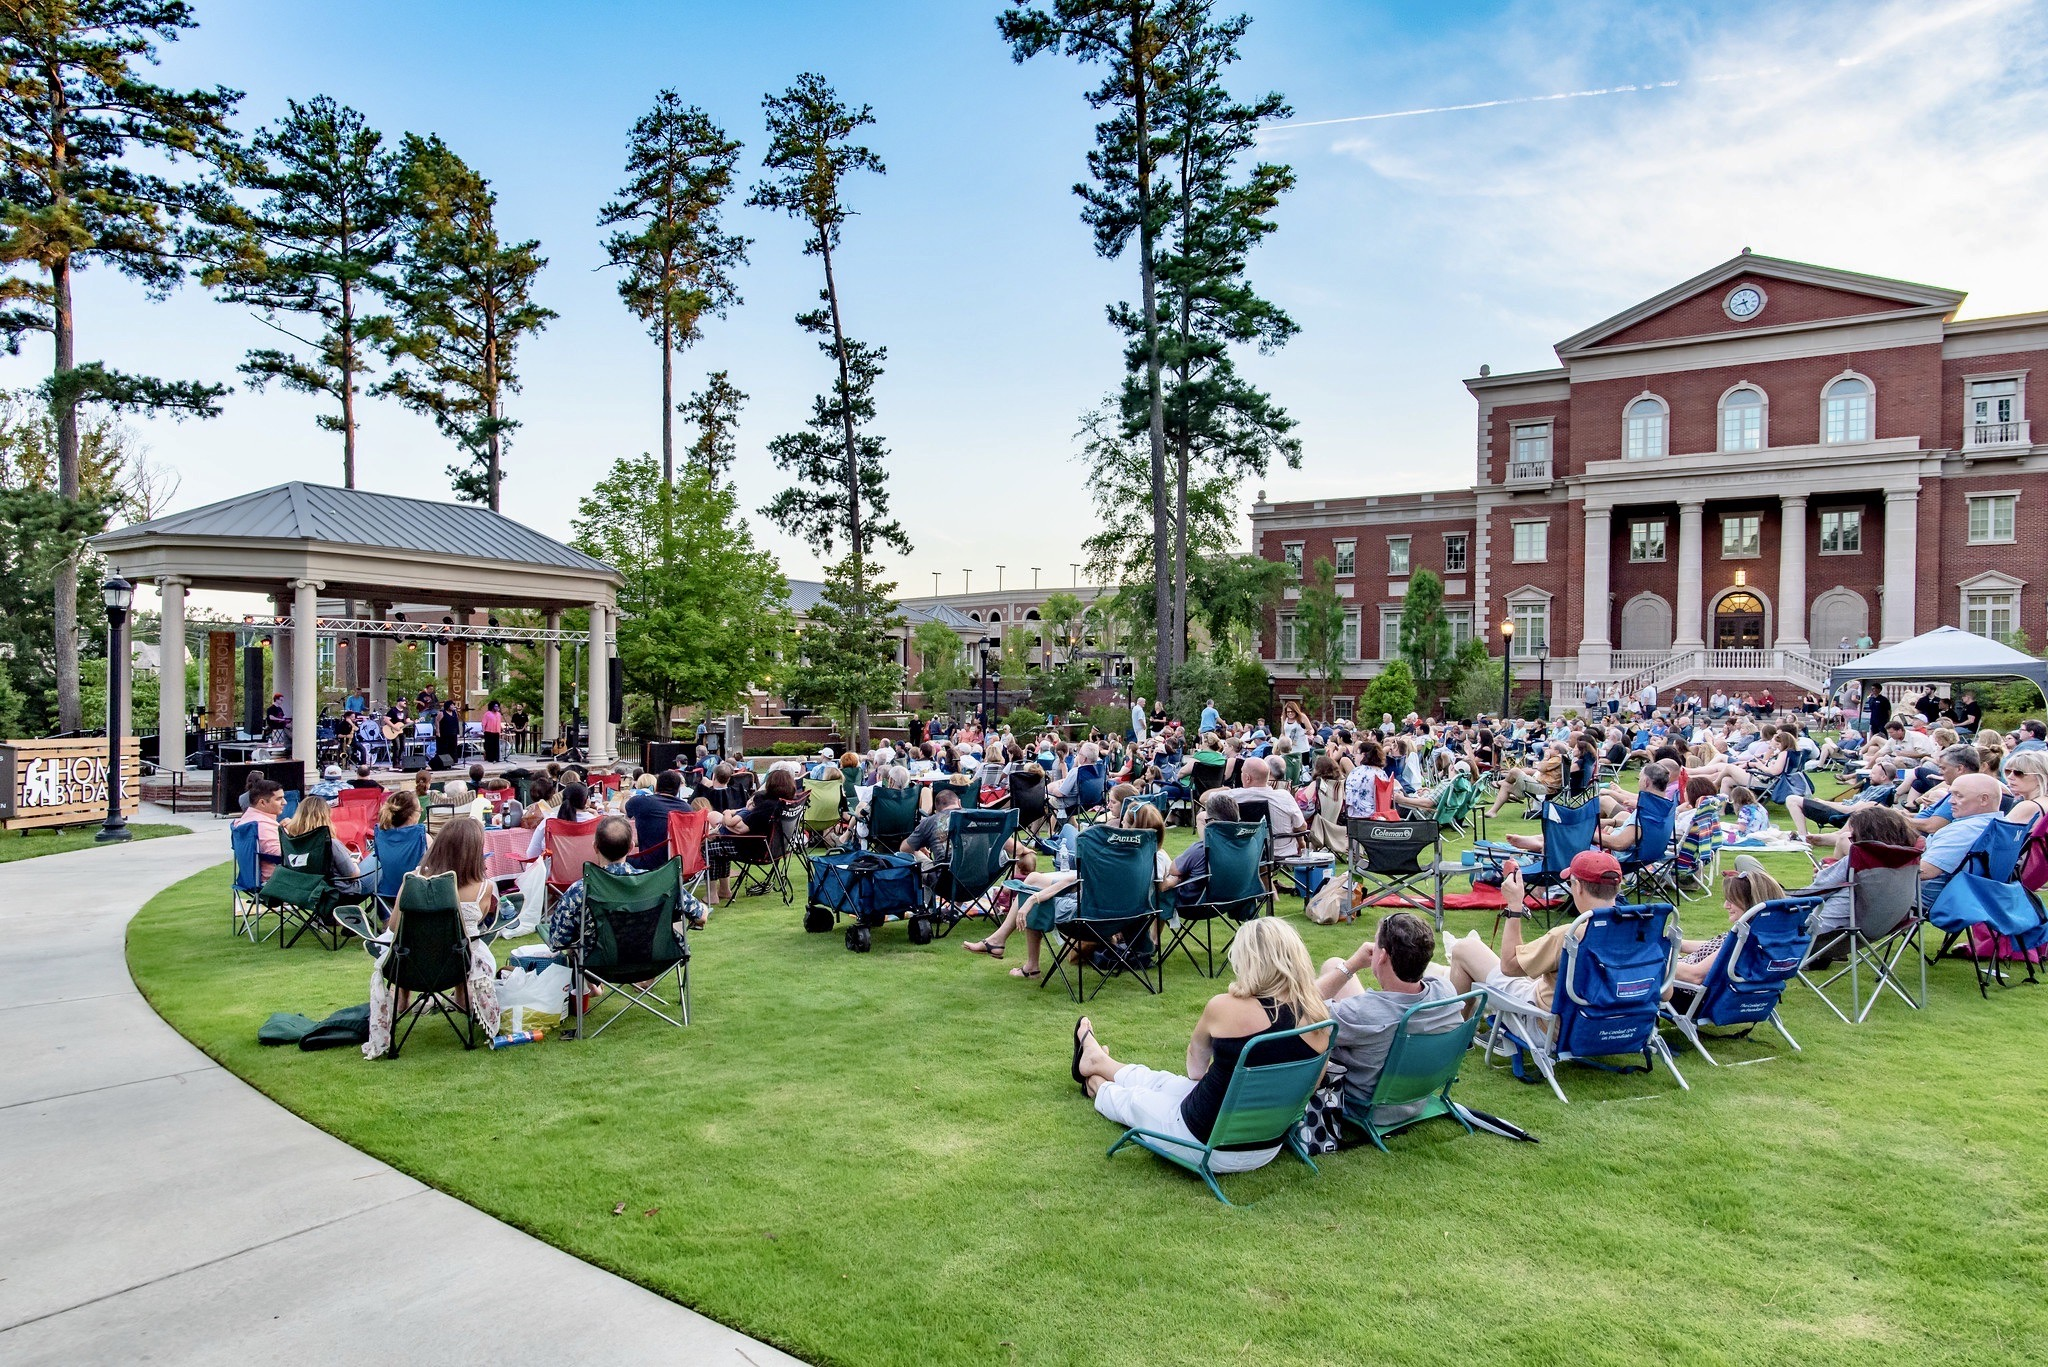 Free in Alpharetta can include outdoor concerts in spacious parks.